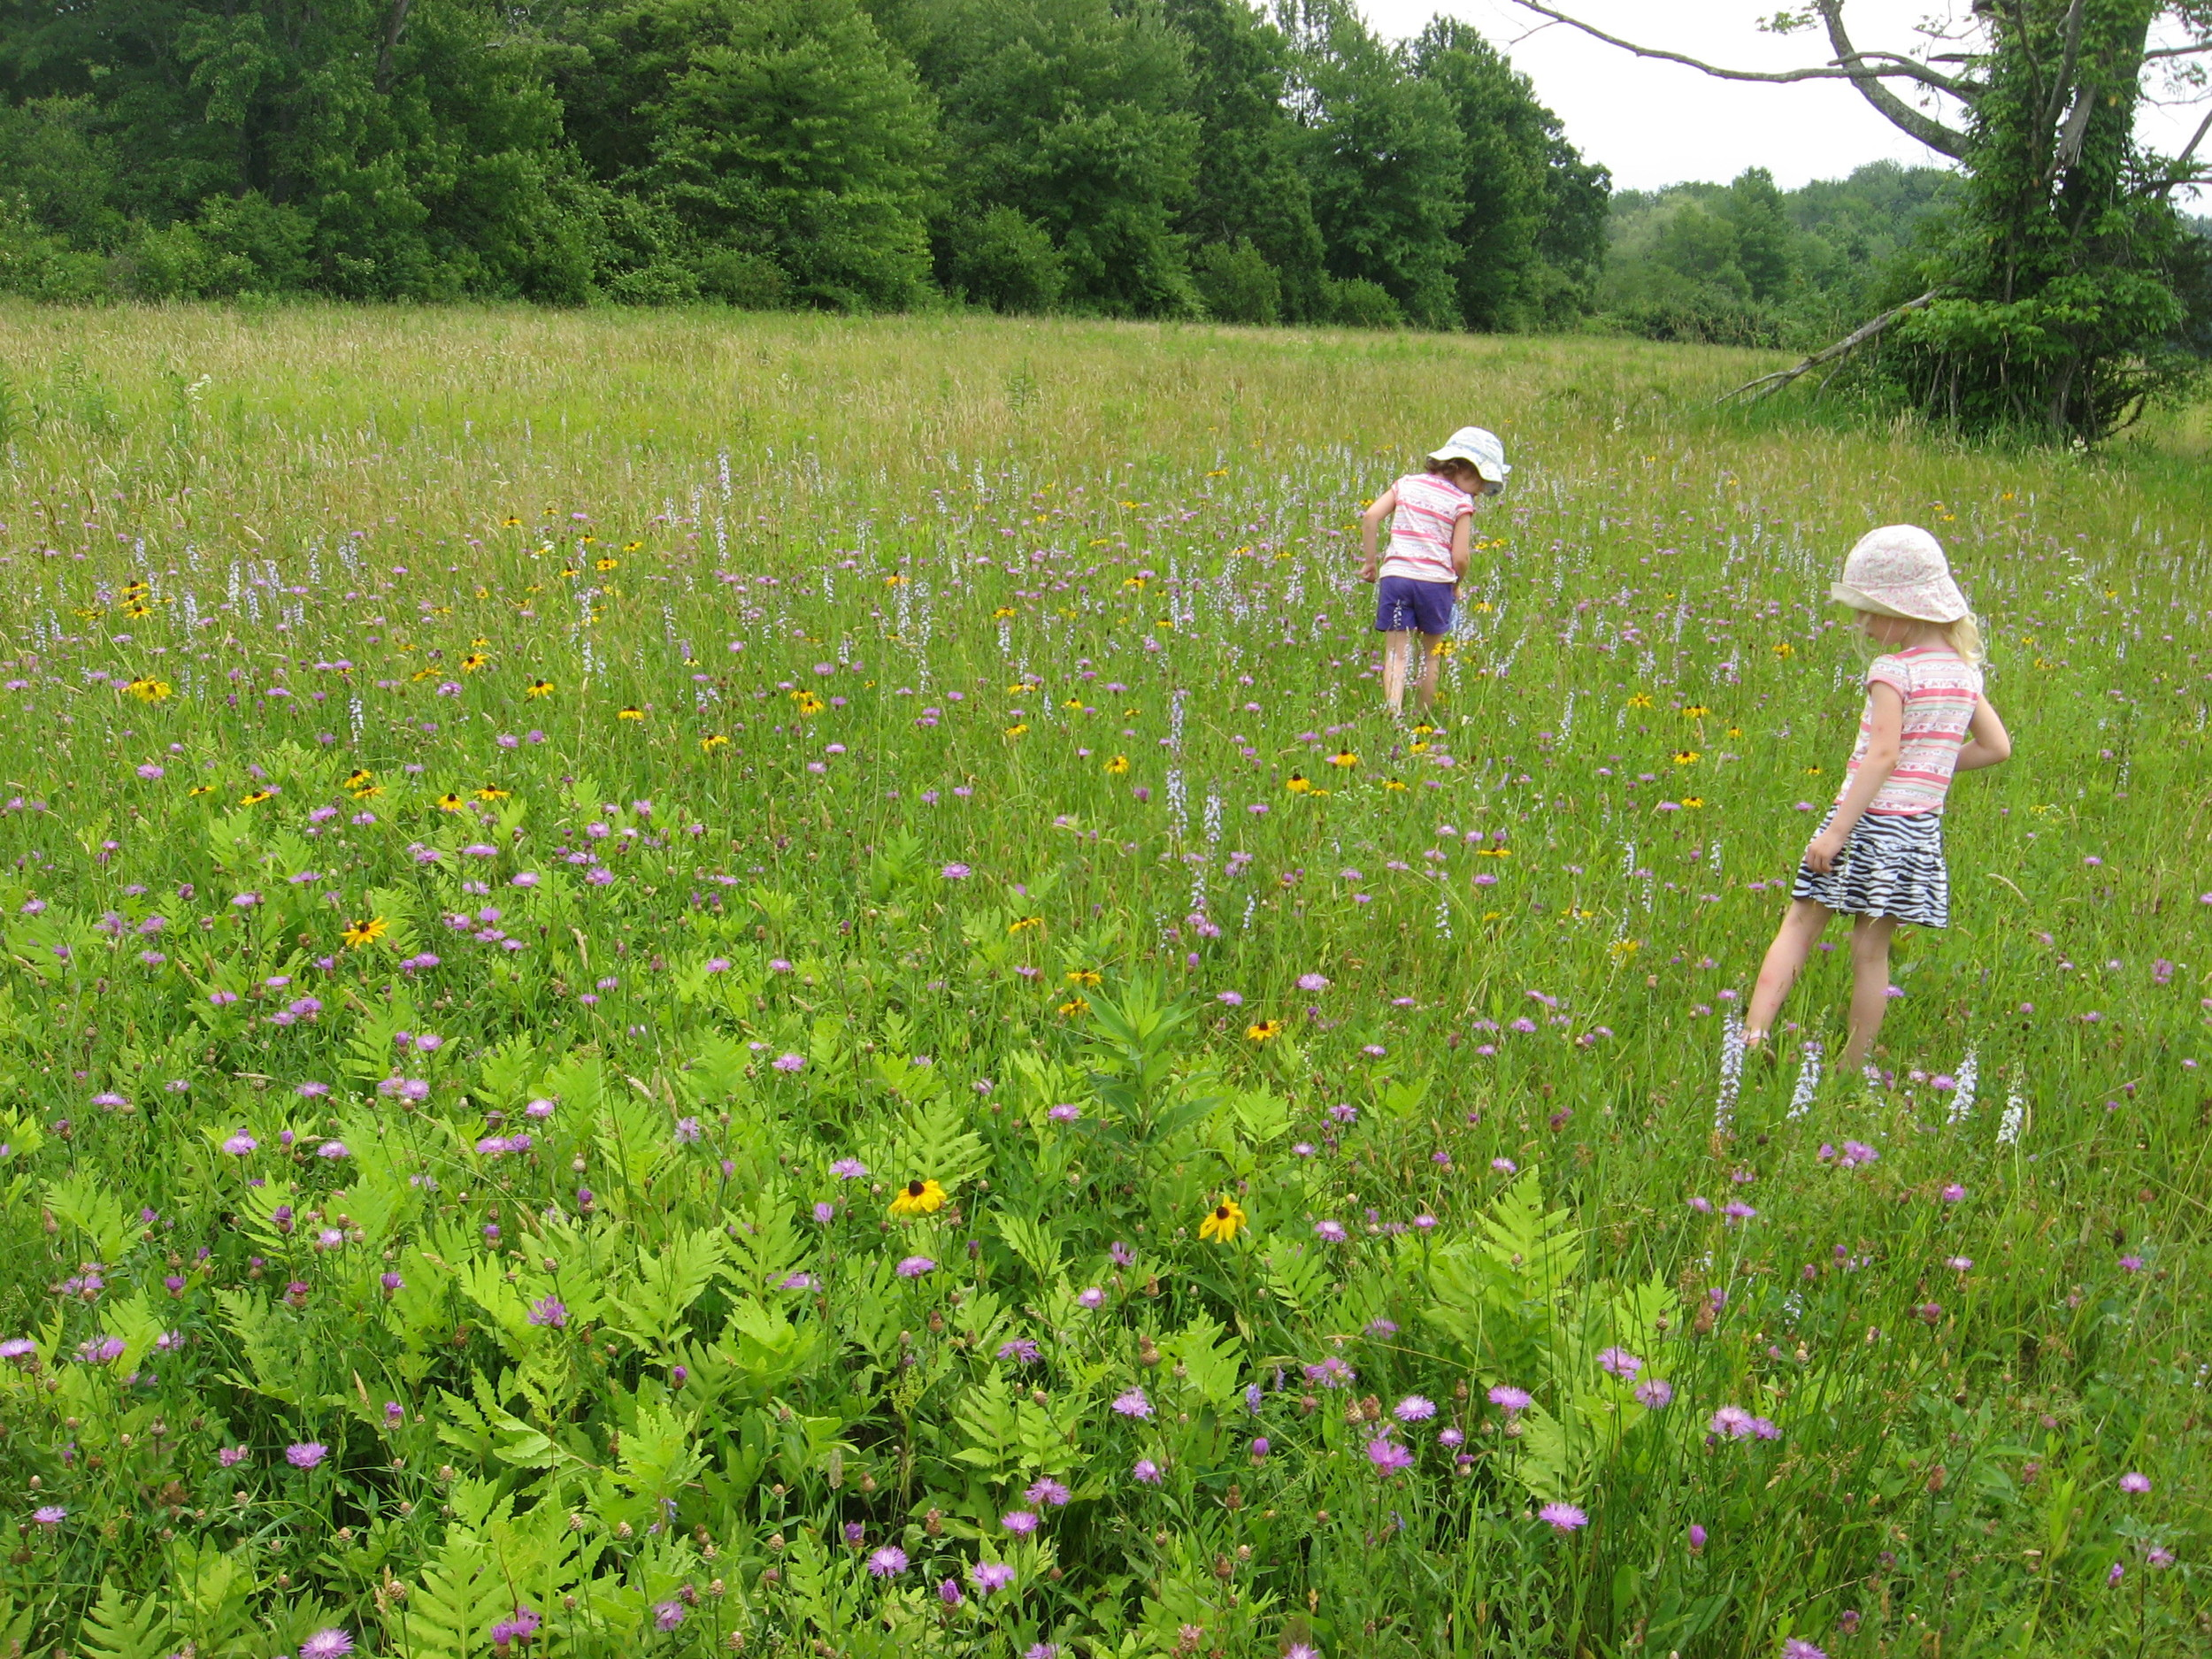 June 2013. The twins, making their way across one of our wildflower meadows.